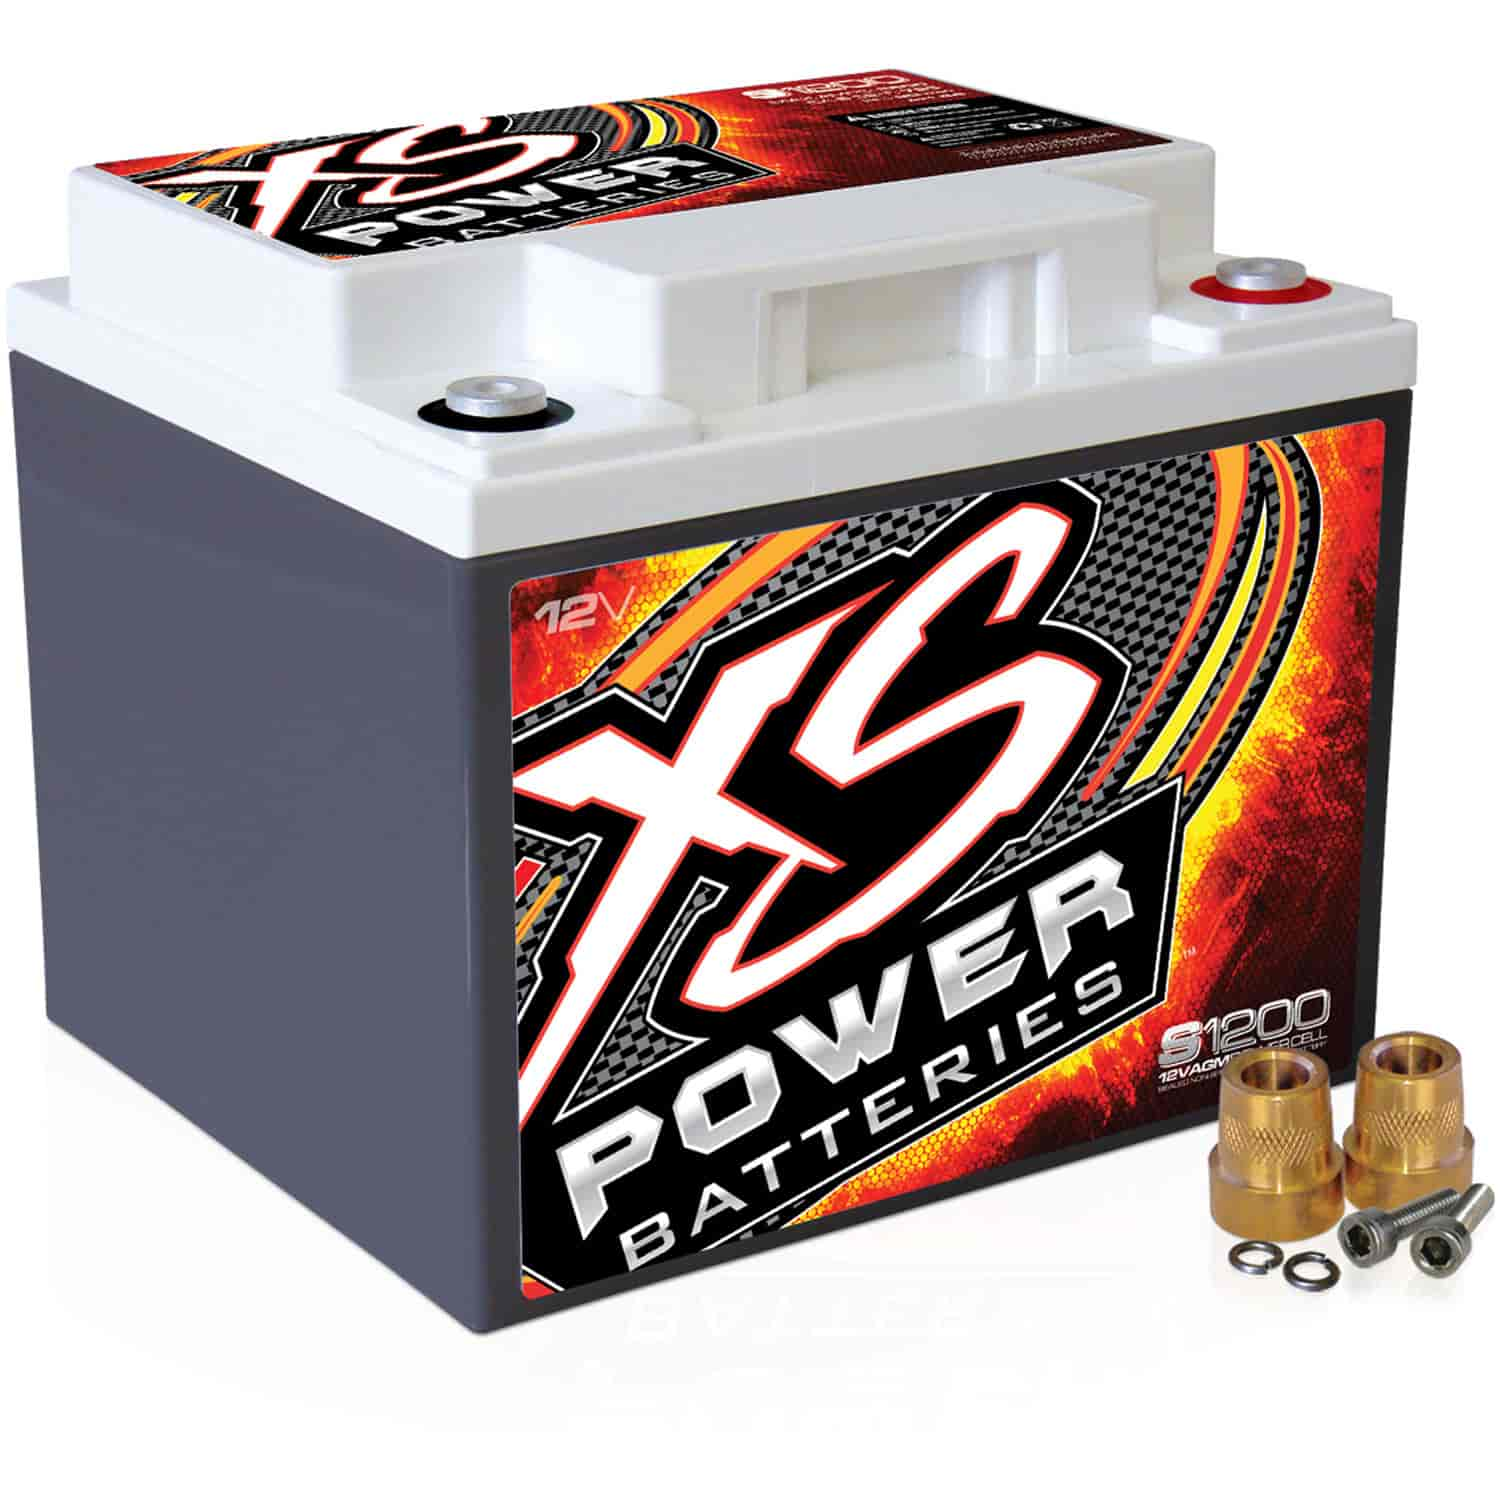 XS Power S1200 - XS Power Batteries